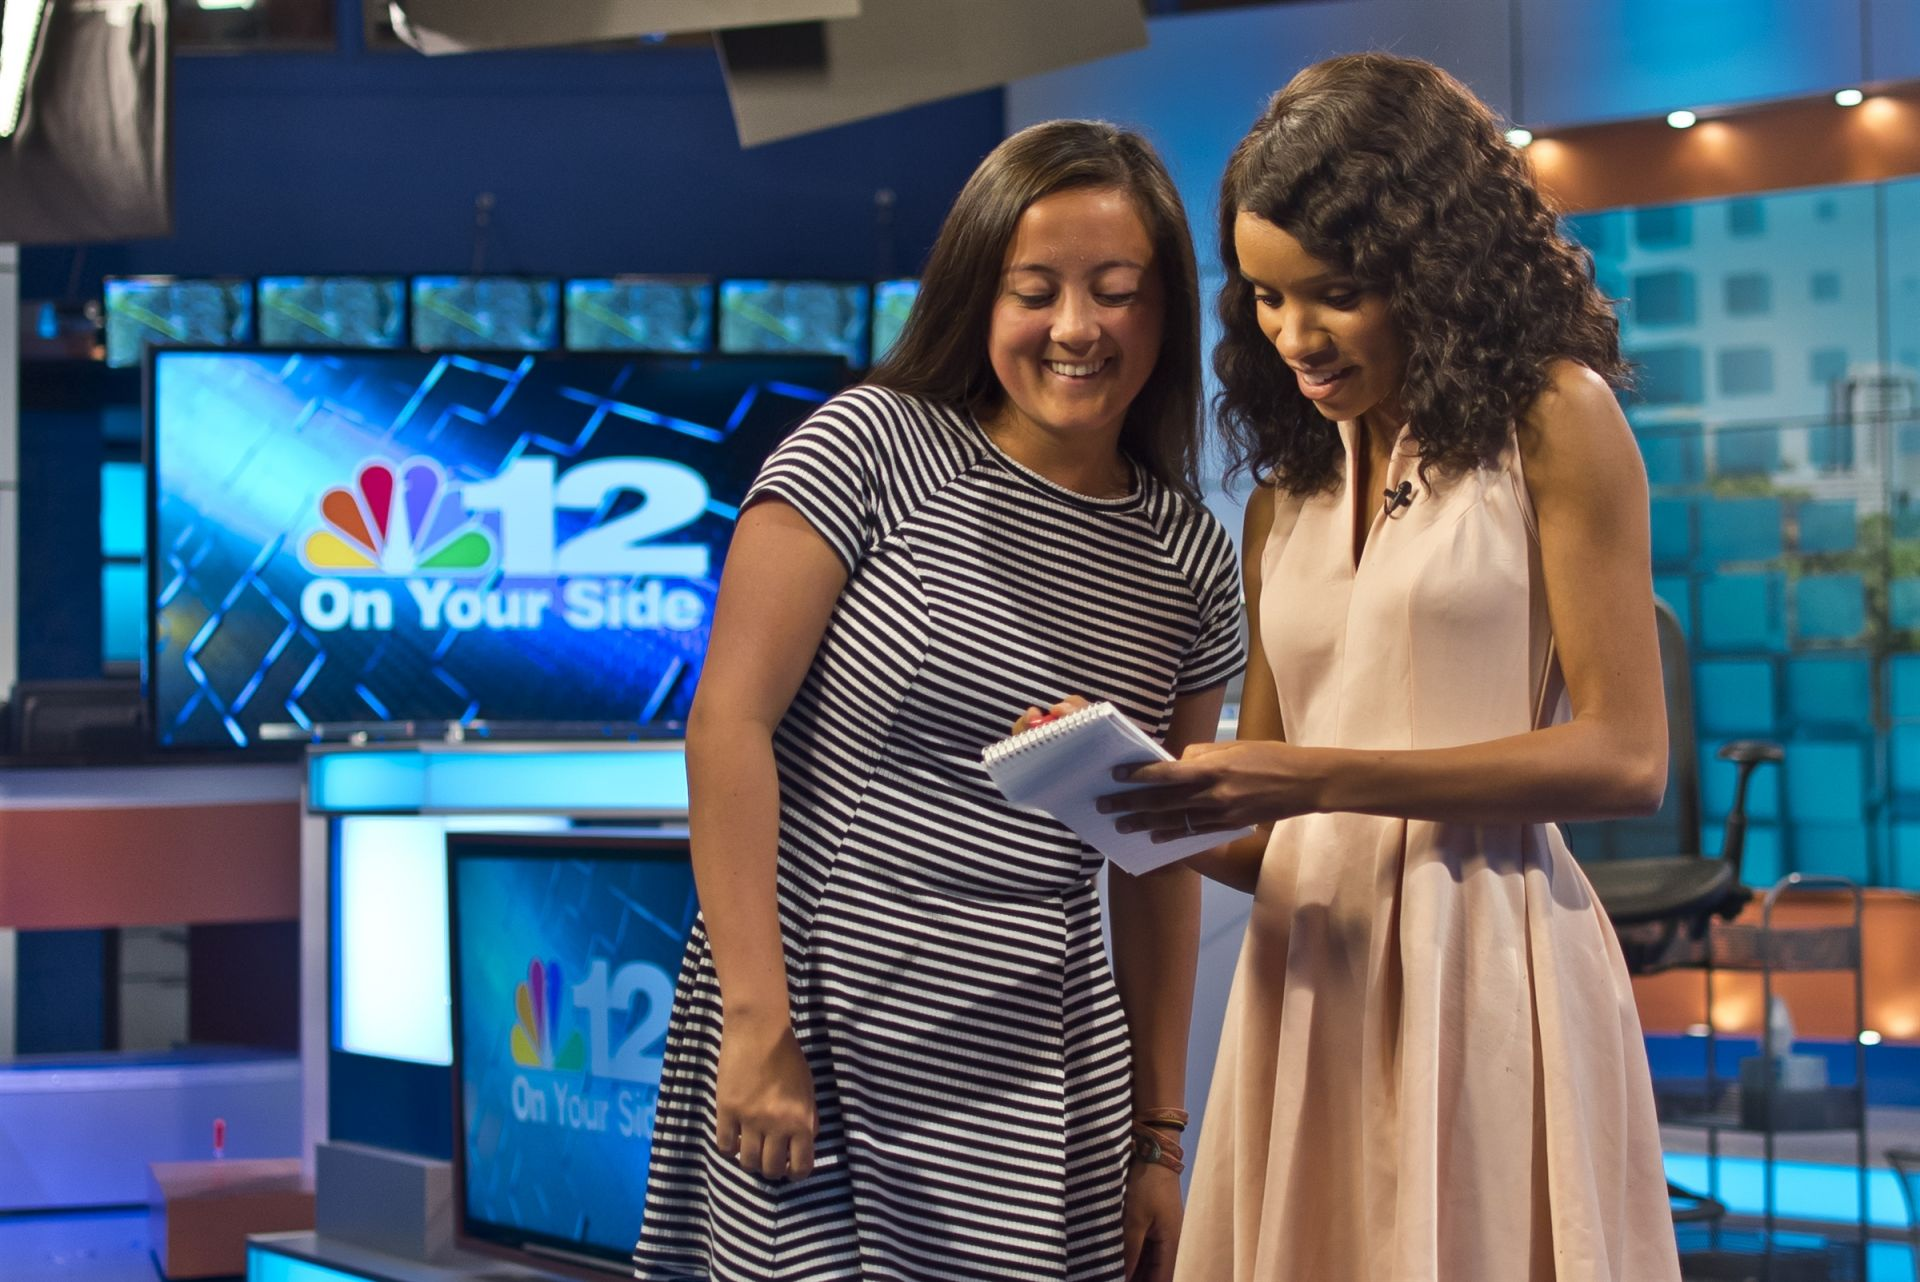 Collegiate Student at NBC 12